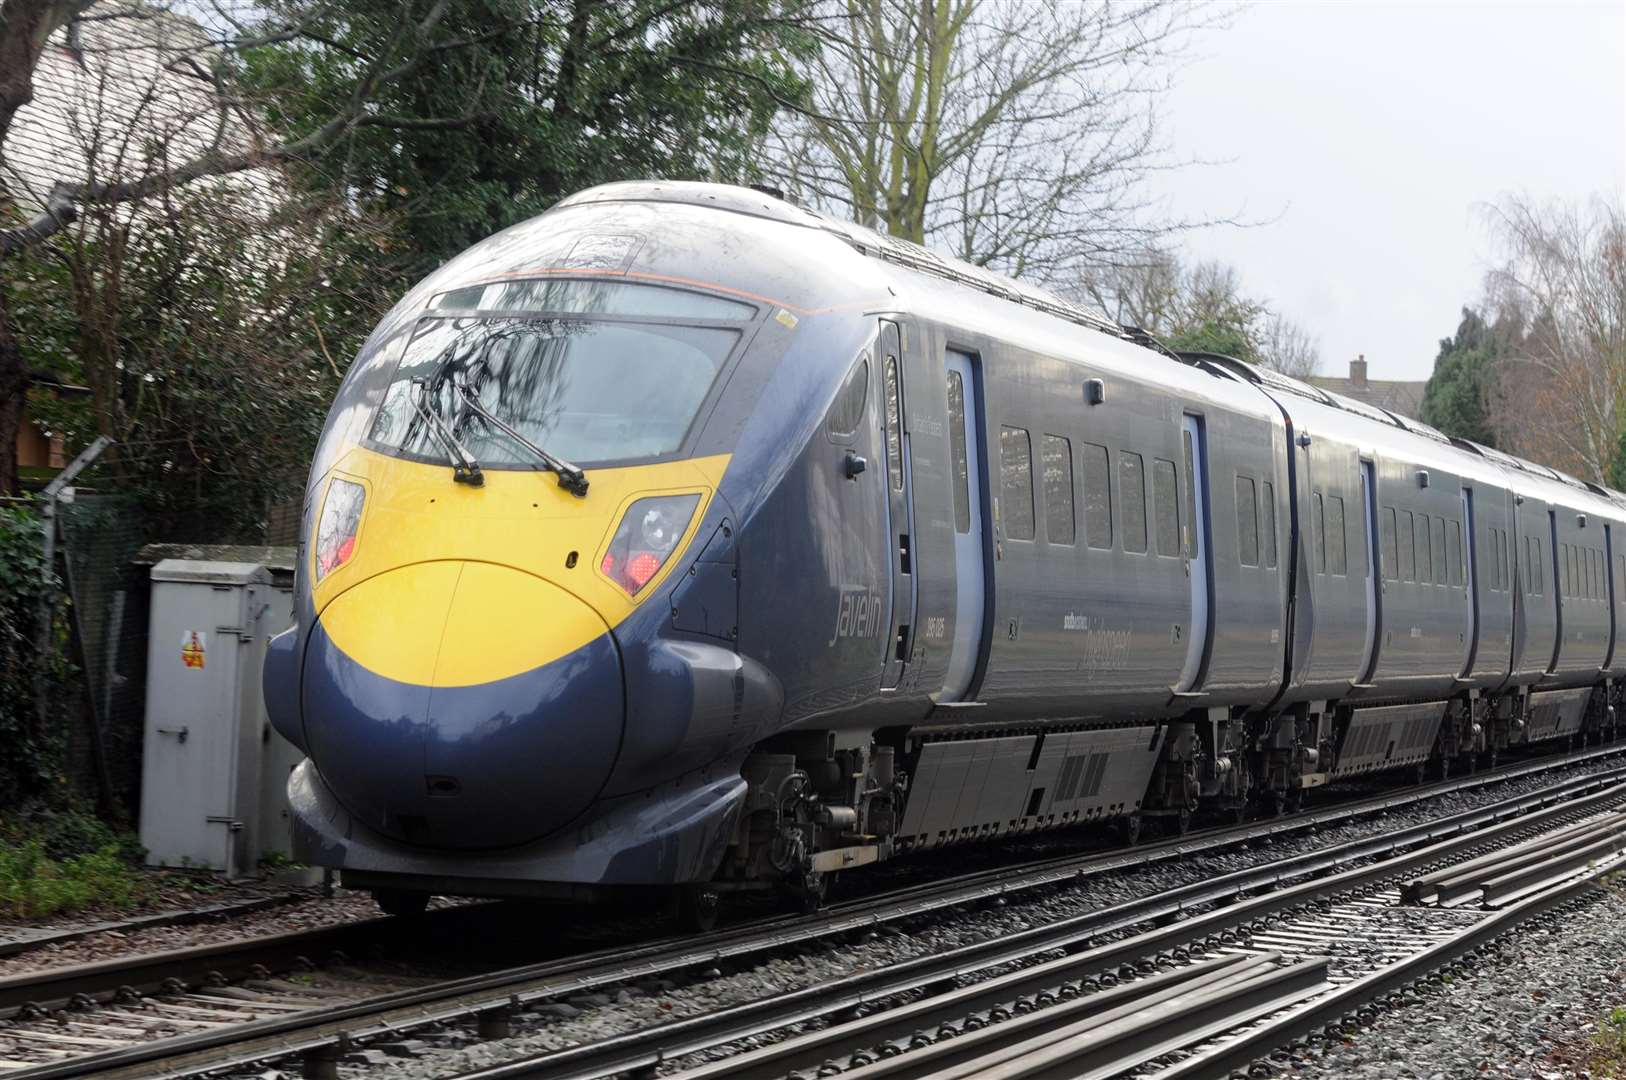 HS1 launched a decade ago